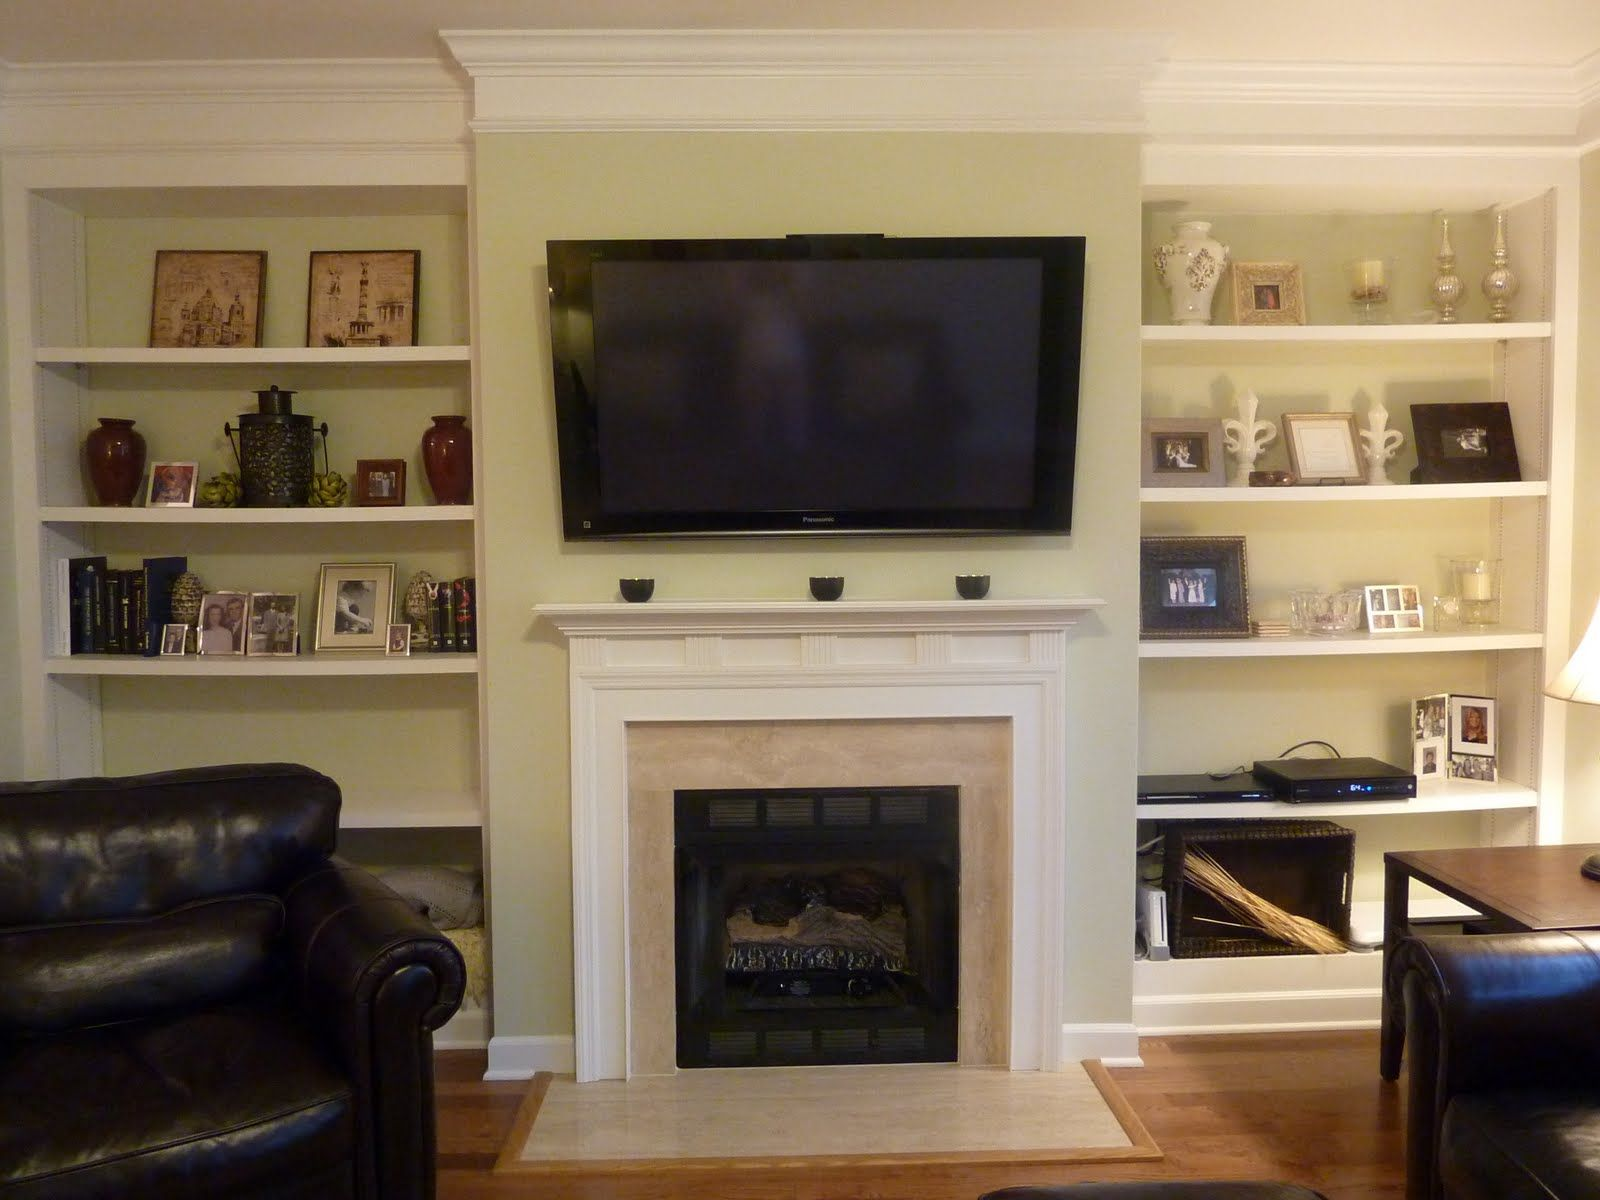 Built In Shelves Surrounding Fireplace - The Living Room Has Great